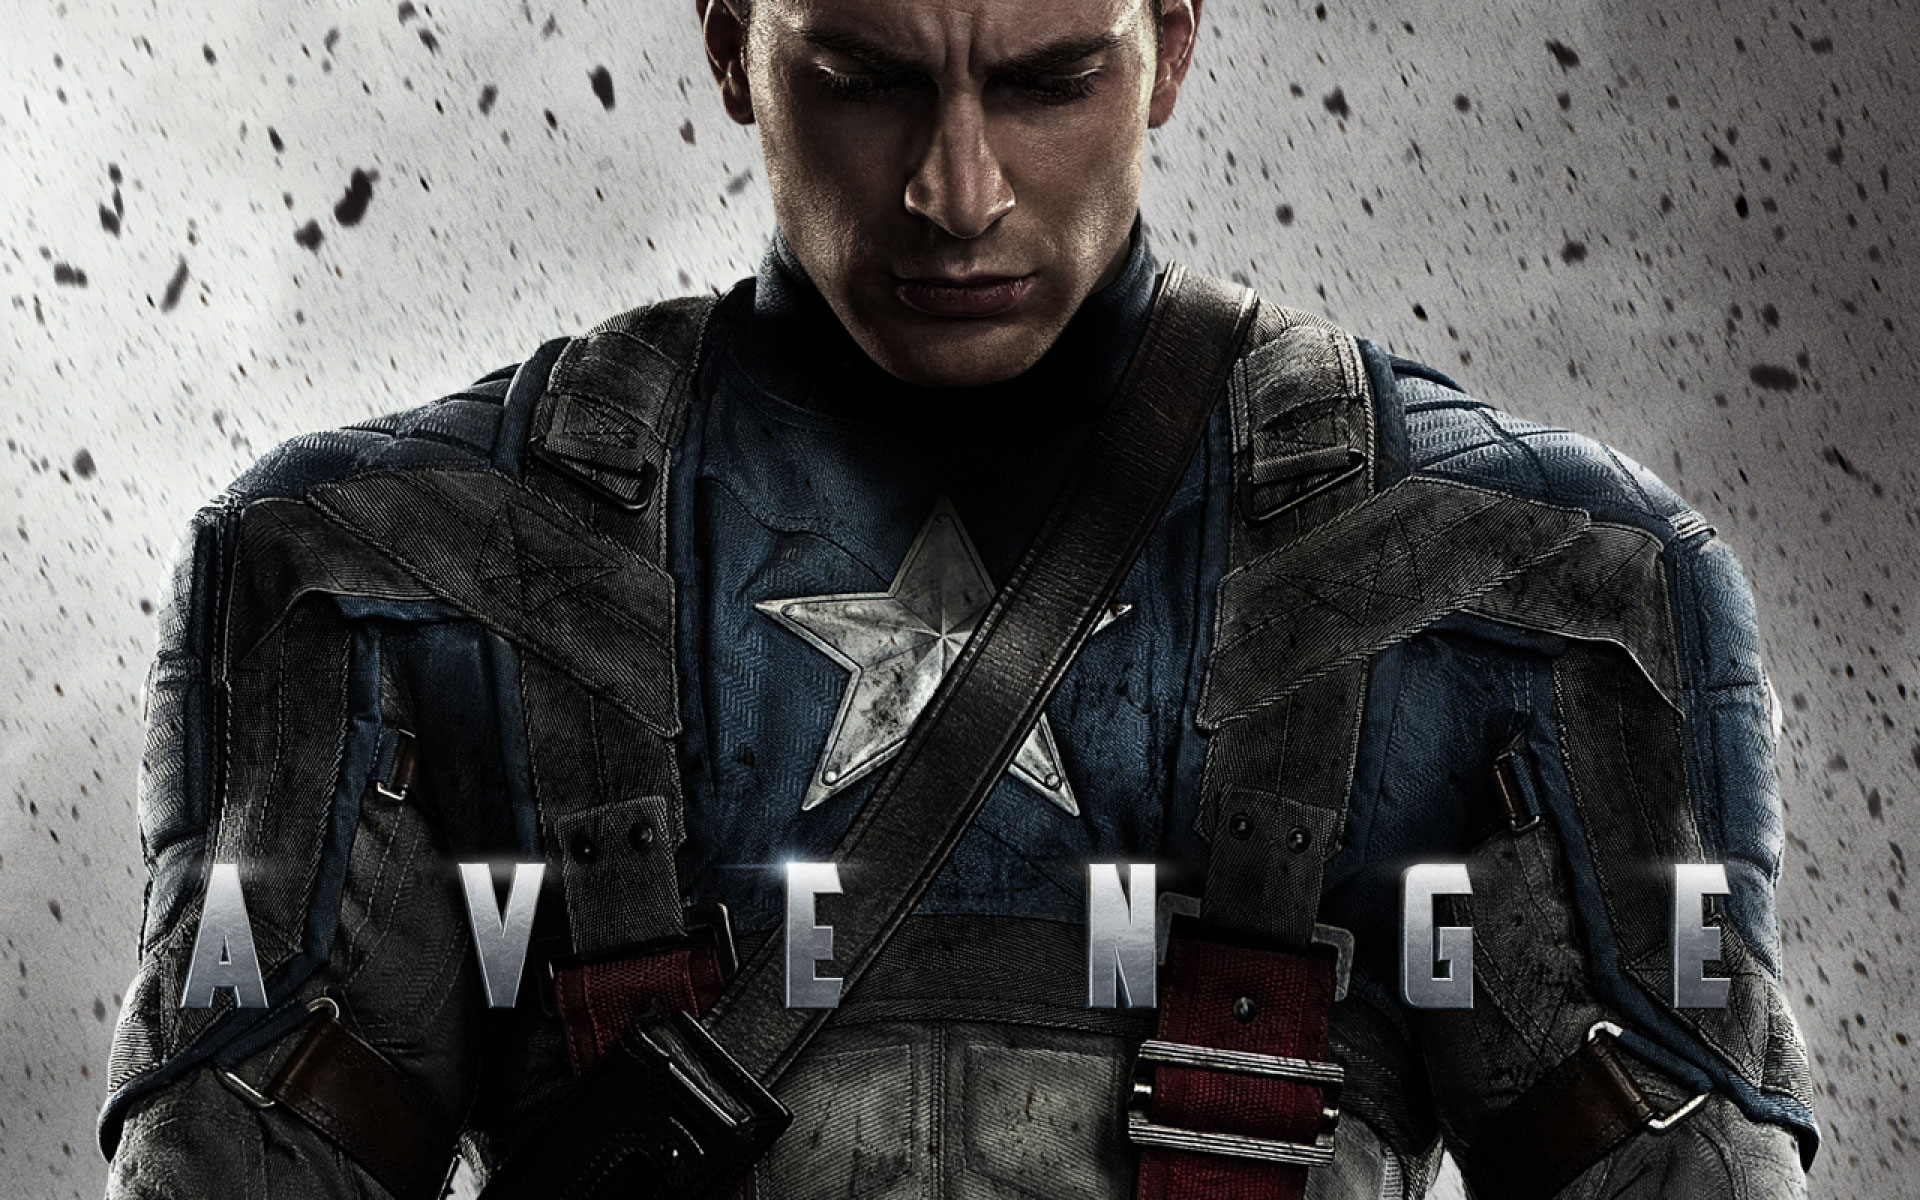 Cool Captain America Wallpaper 17861 1920x1200 px